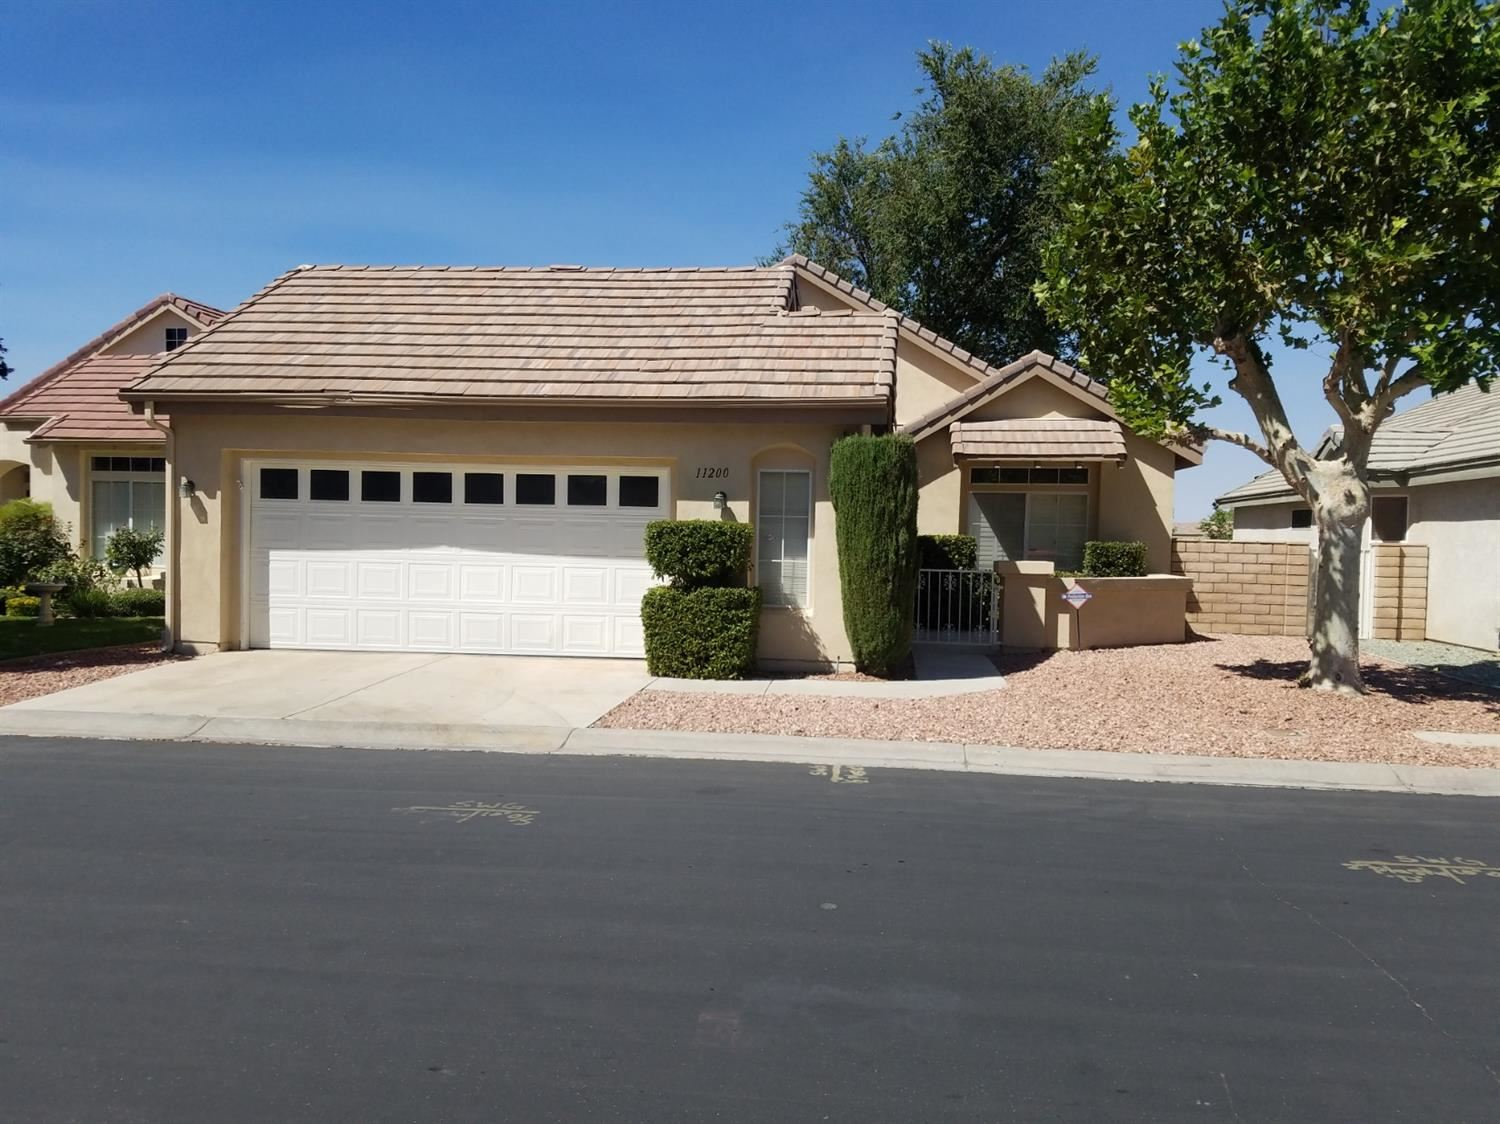 11200 Country Club Drive, Apple Valley, CA 92308 - MLS#: 528162